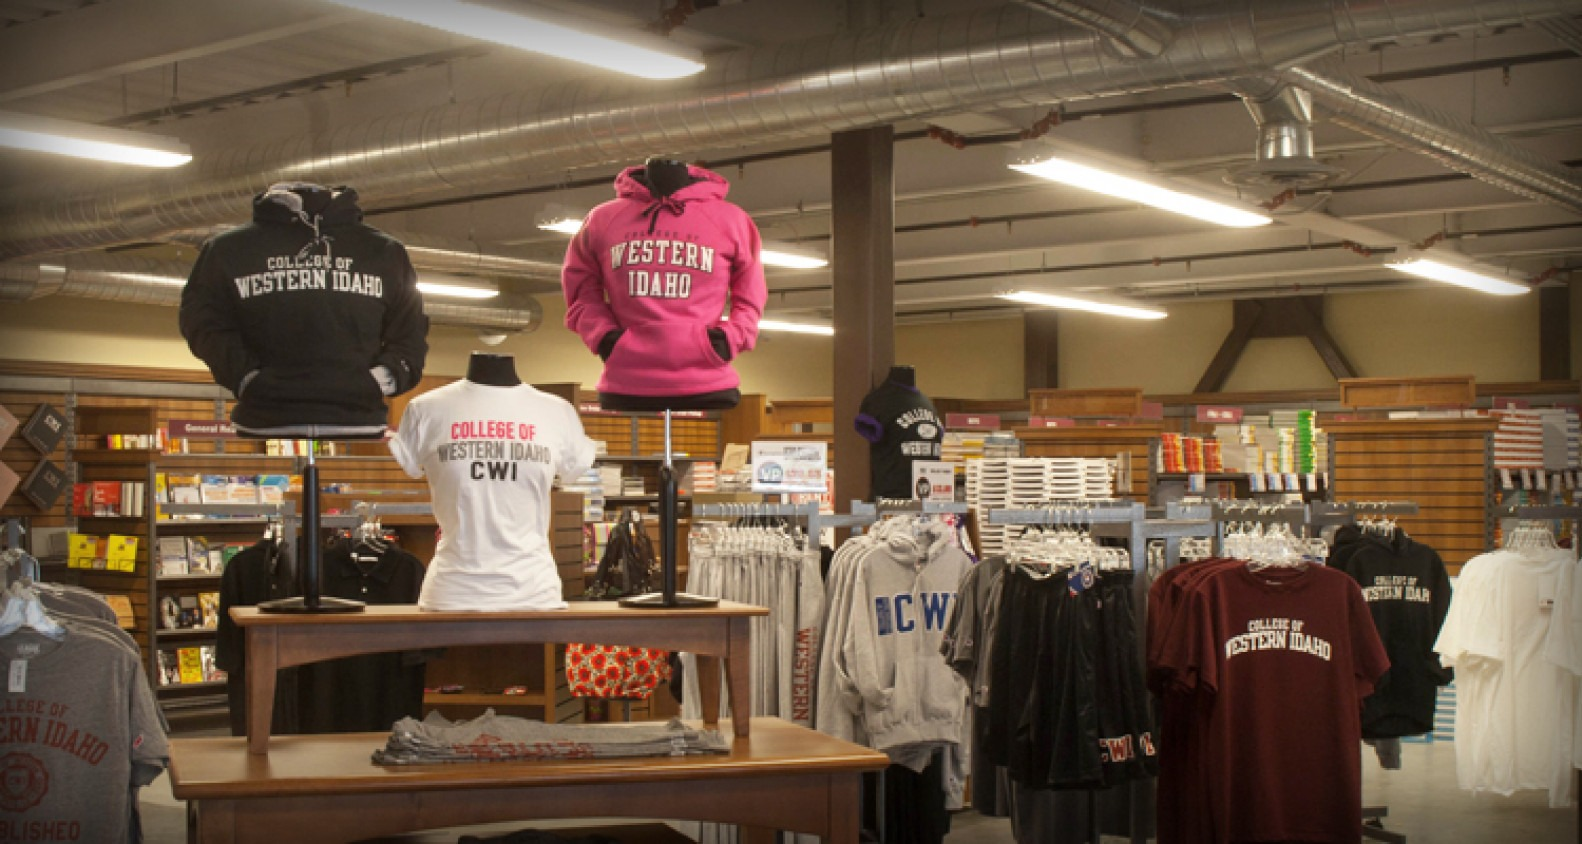 Apparel, supplies, and books in the CWI Bookstore